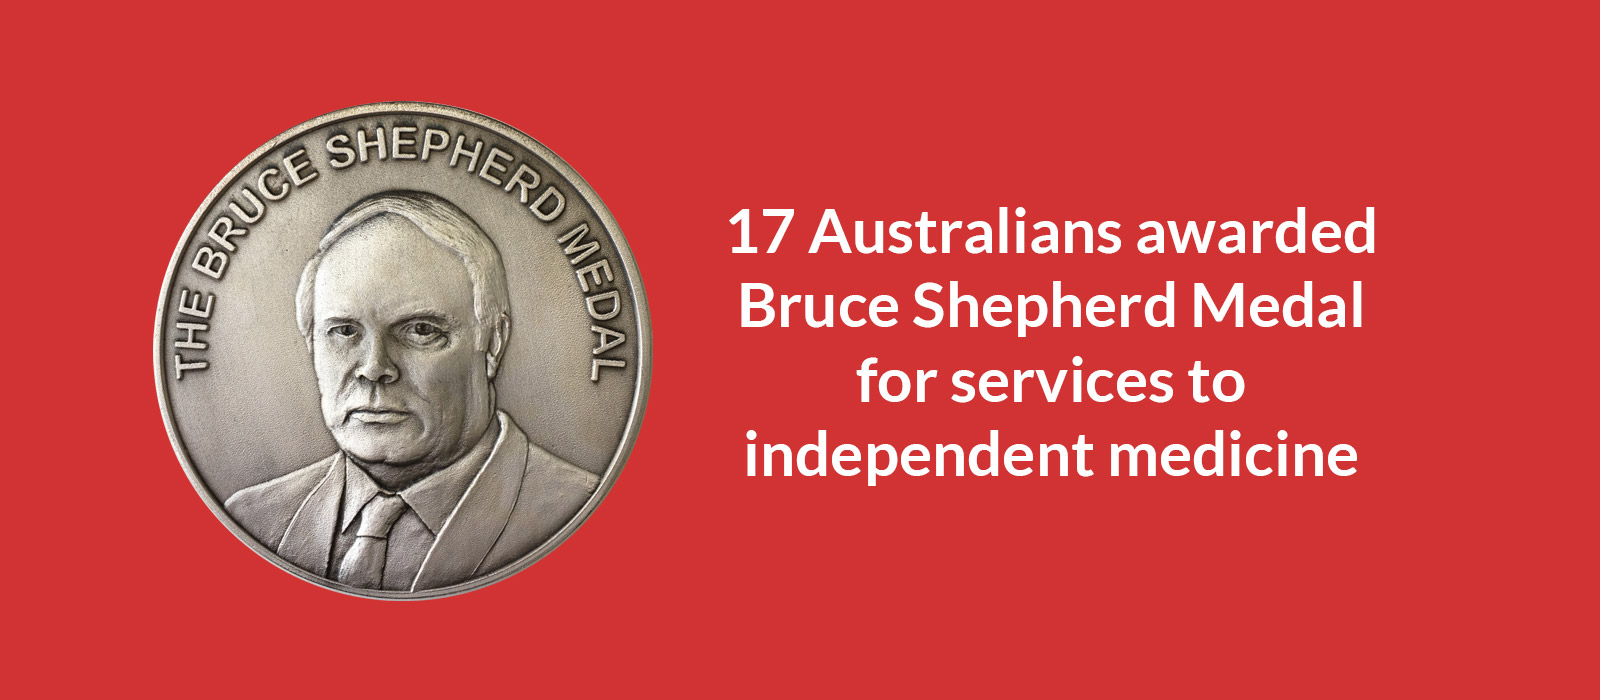 Bruce Shepherd medal Awarded